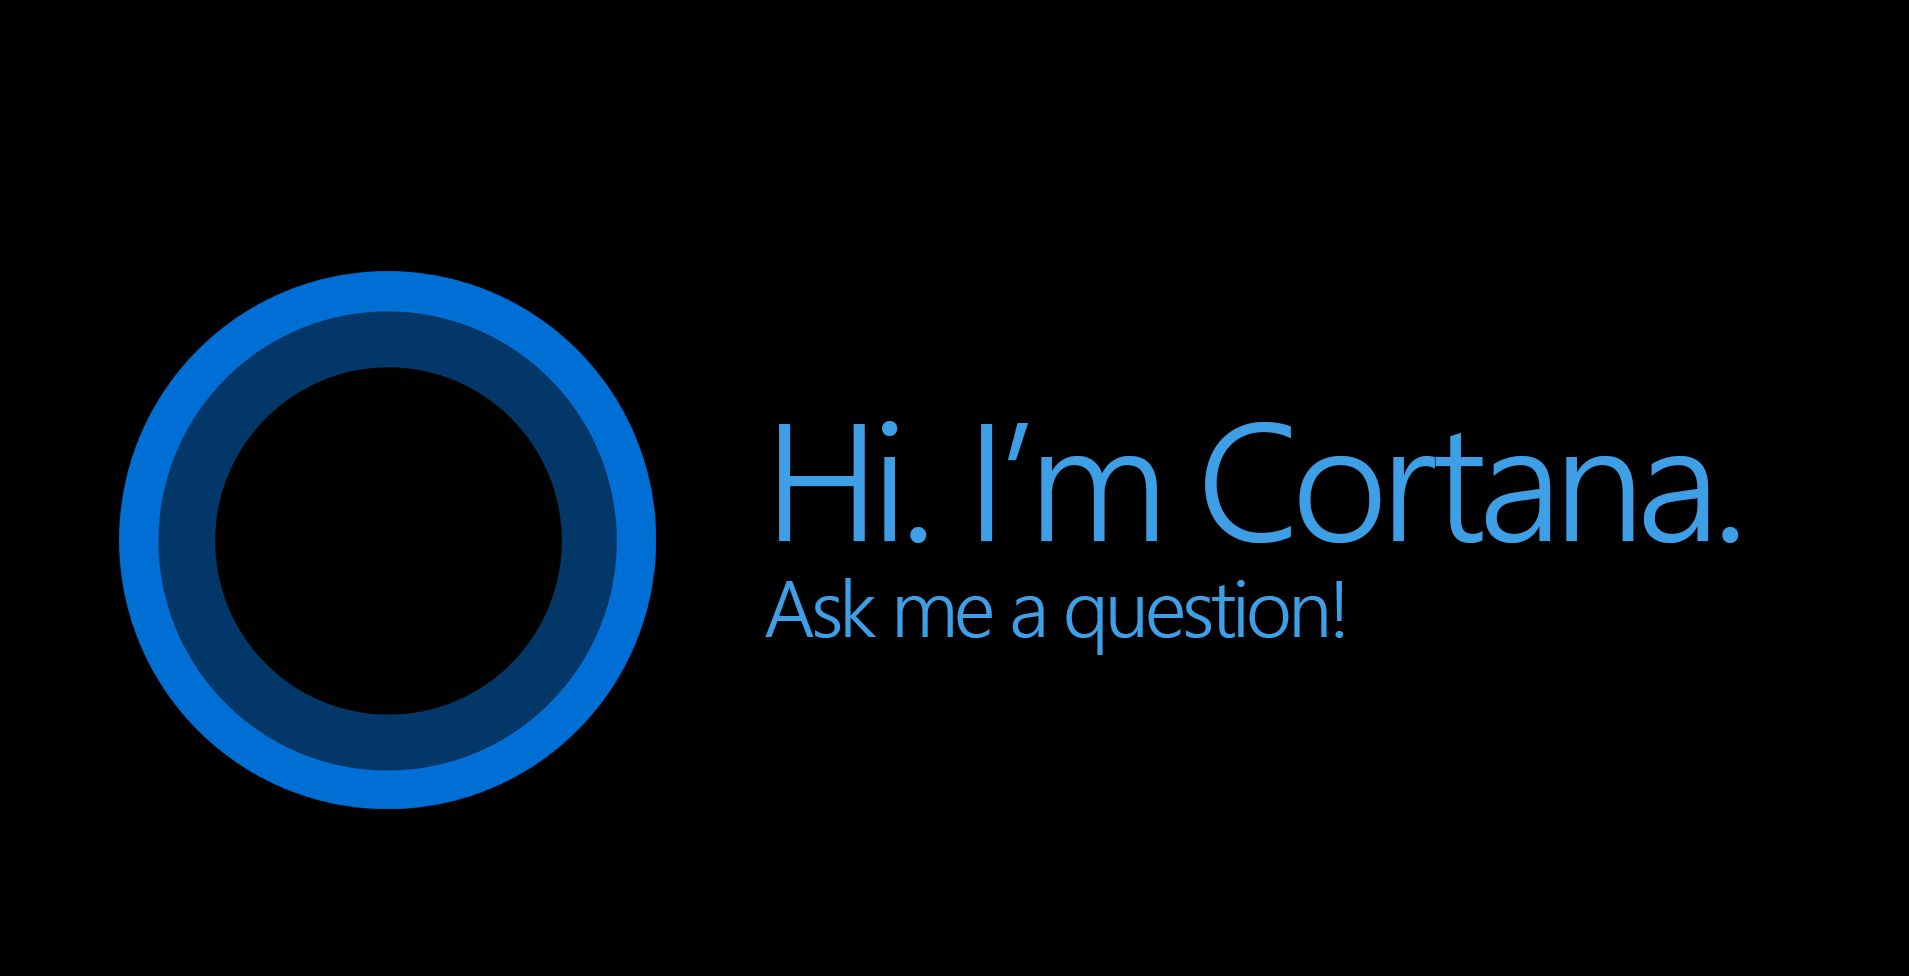 Windows 10, Cortana si mostra